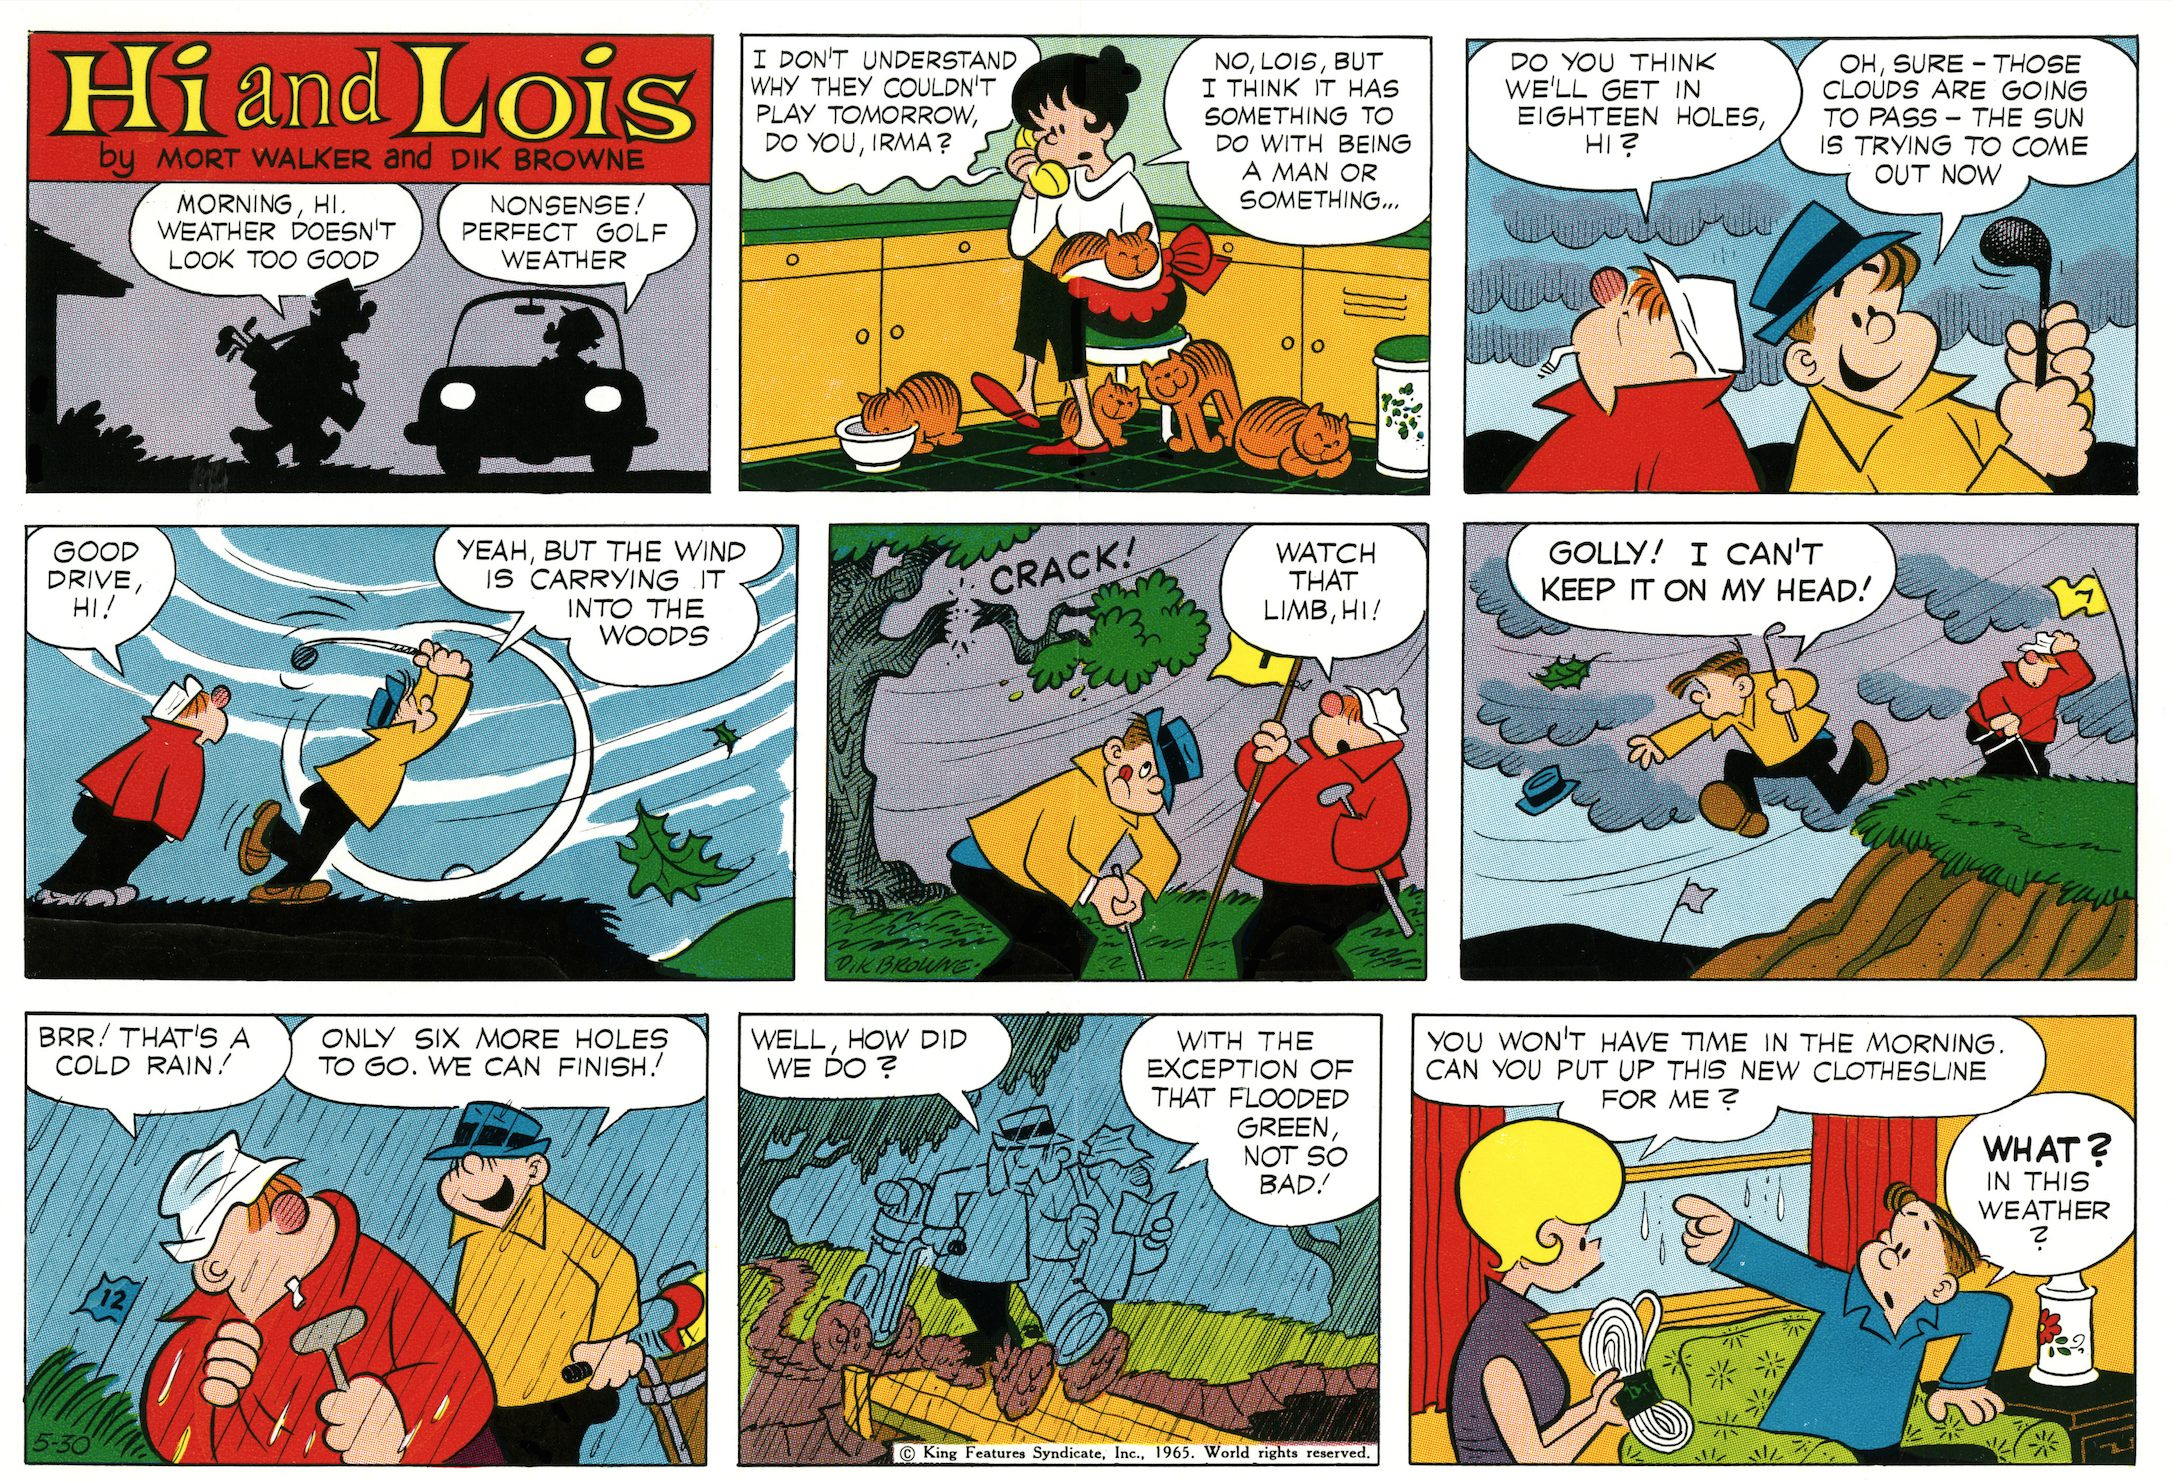 Hi and Lois Sunday page color proof, May 30, 1965.